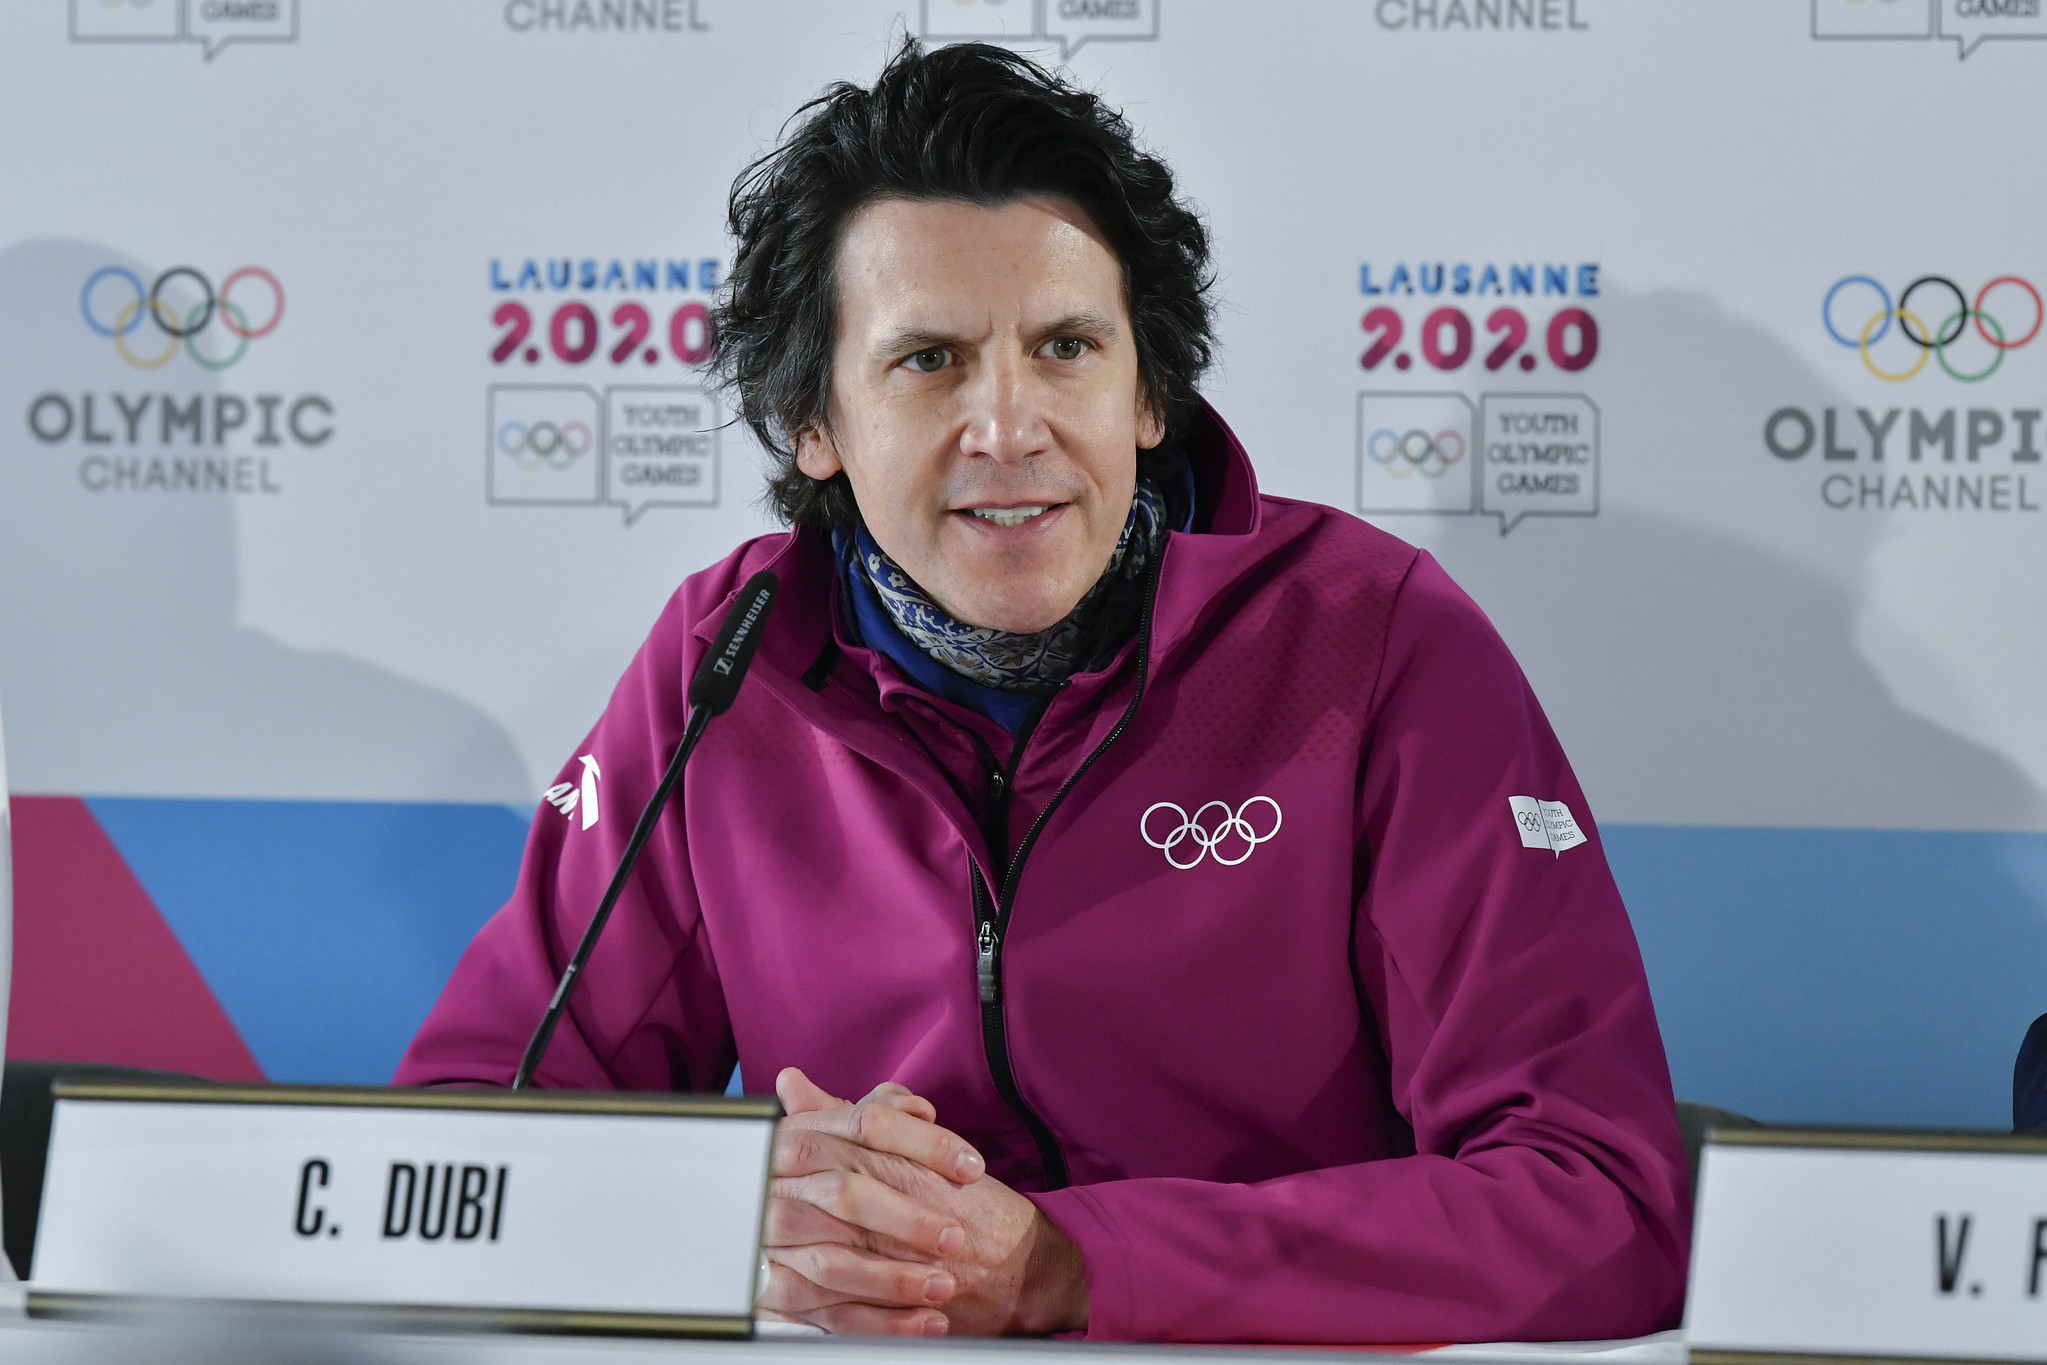 IOC executive director for the Olympic Games Christophe Dubi praised Lausanne 2020 at the halfway stage ©IOC